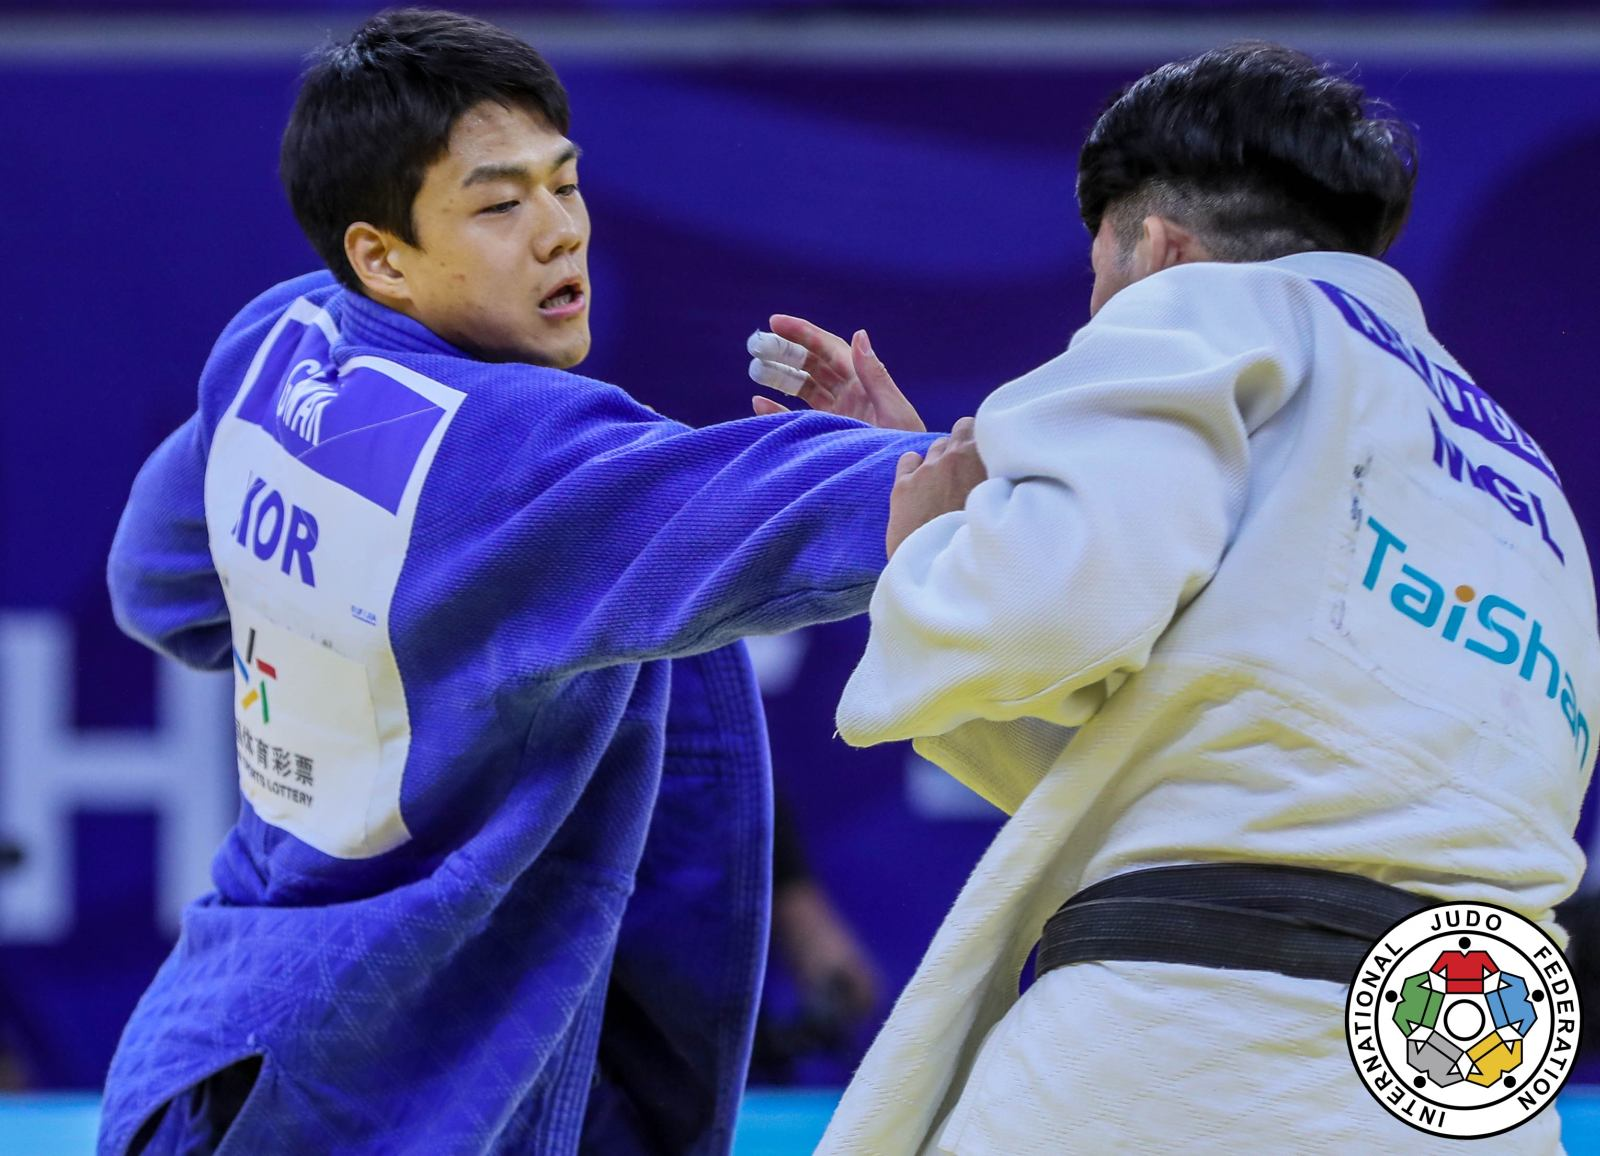 20180527_hohhotgp_ijf_day3_final_90_gwak_donghan